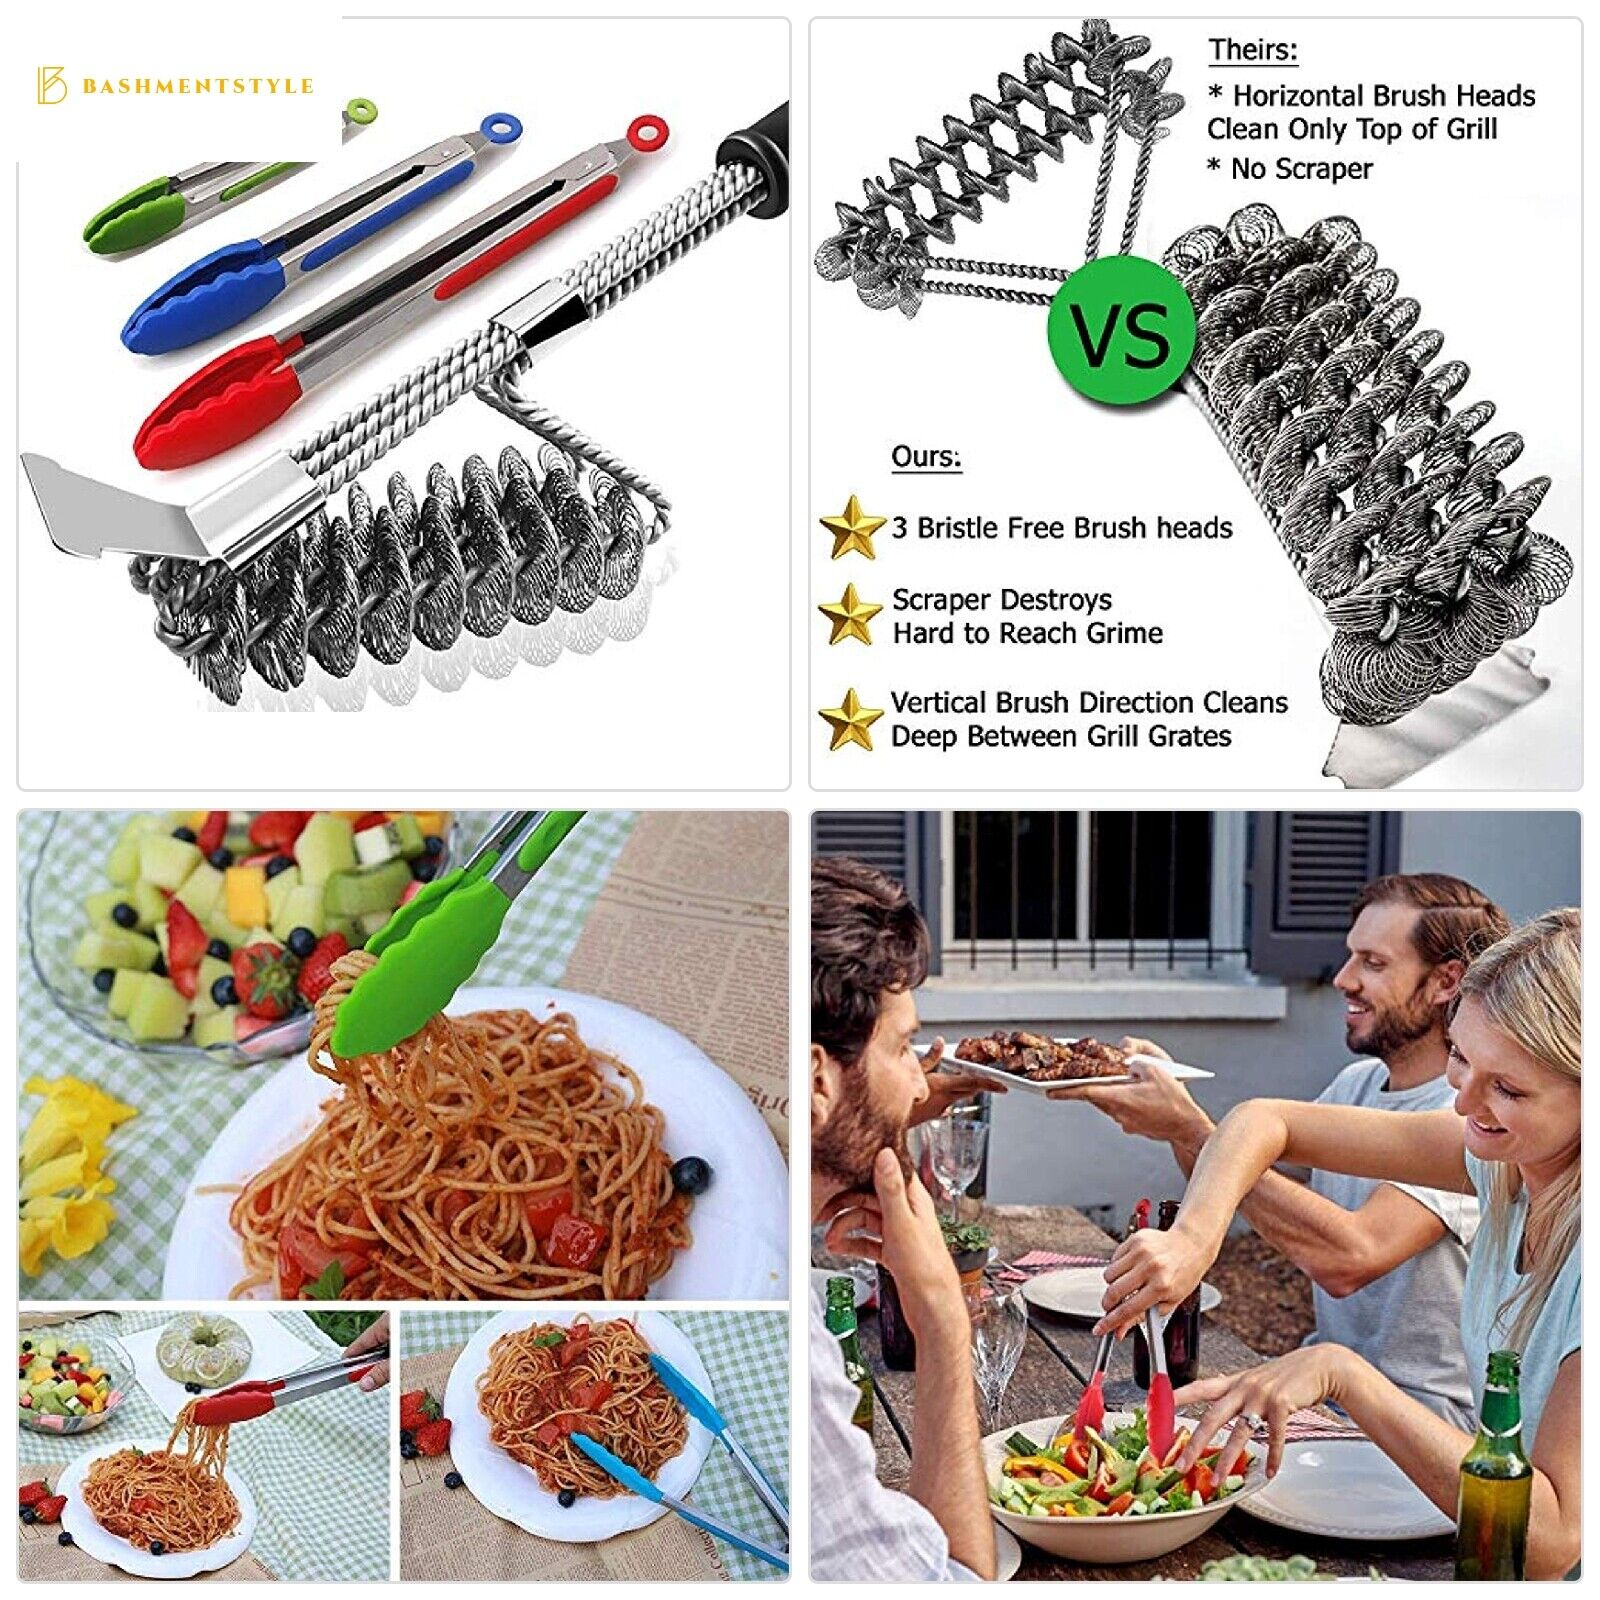 Hokichen BBQ Grill Brush and Scraper Best Rated, Safe Barbec